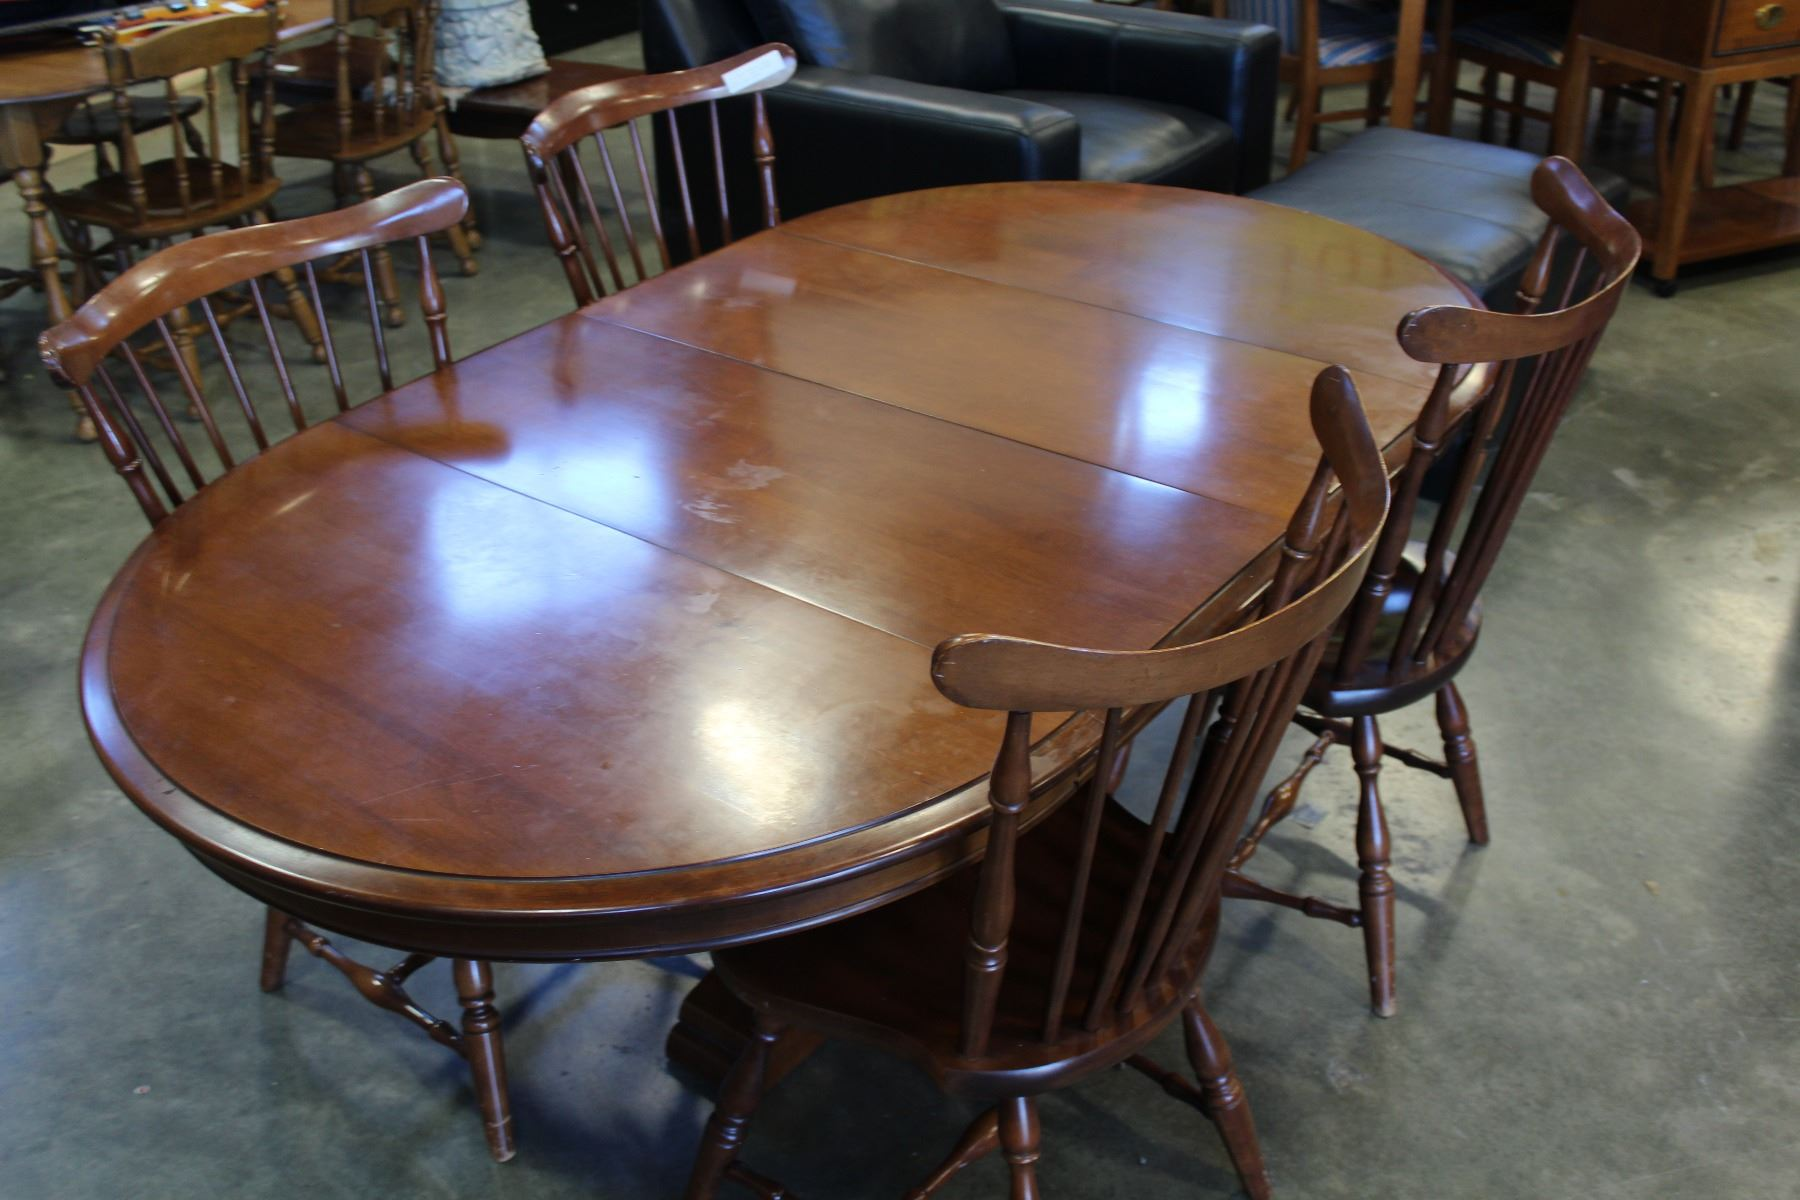 Image 2 VILAS MAPLE PEDESTLE DINING TABLE WITH LEAFS AND FOUR SPINDLE BACK CHAIRS